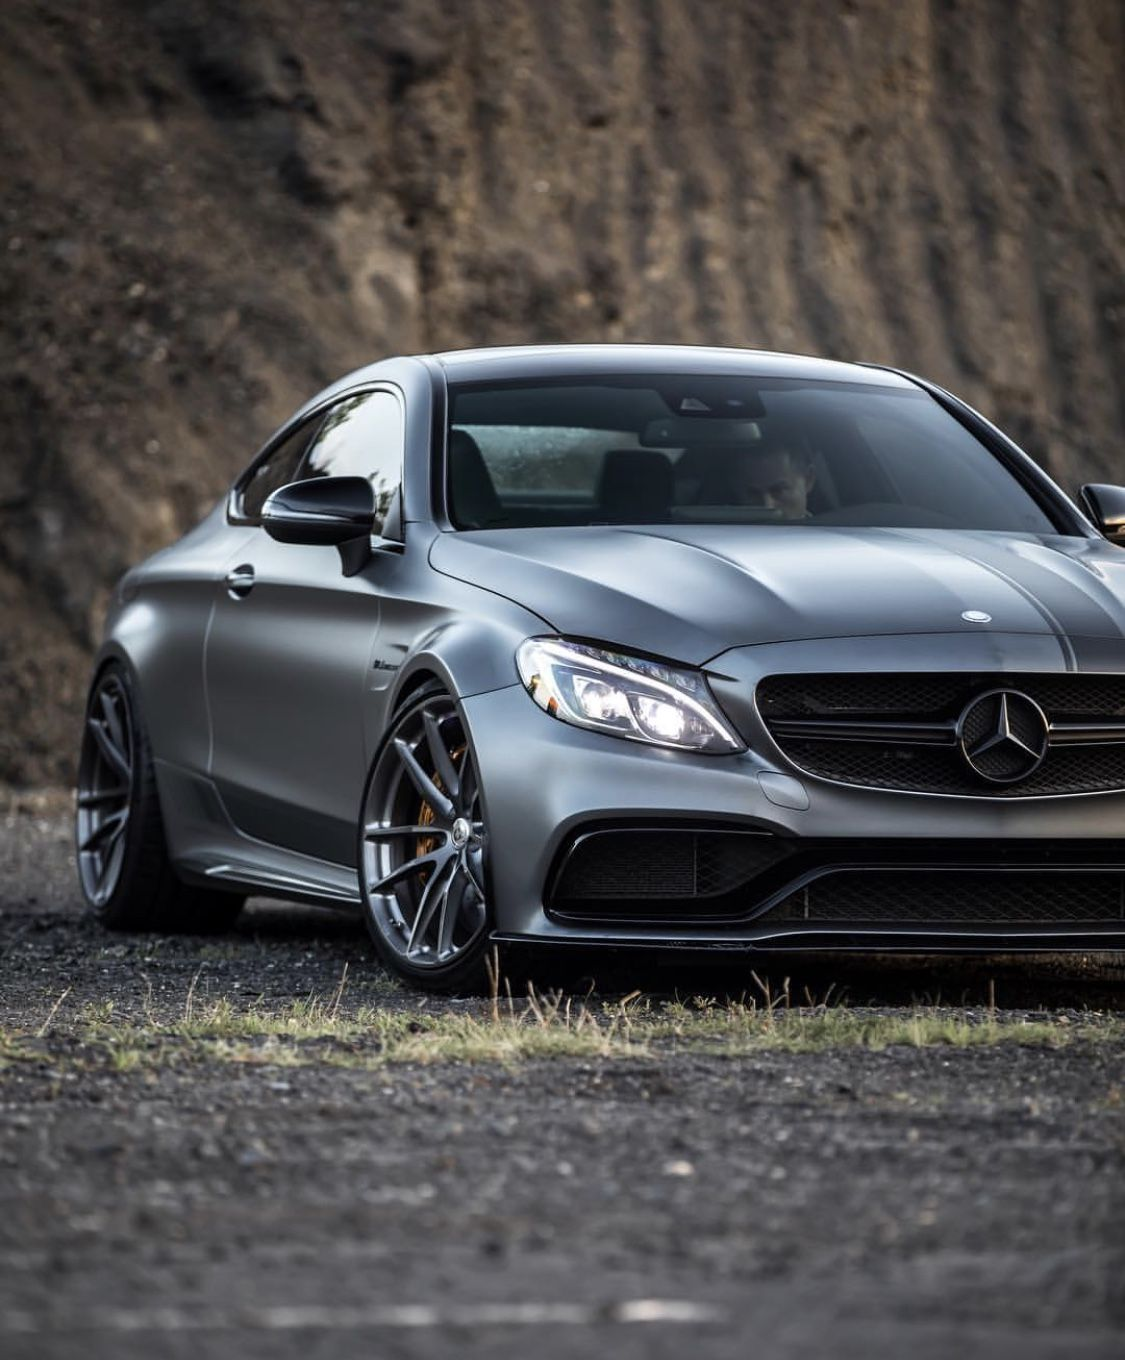 Best Luxury Cars Mercedes Benz Amg: Luxury Cars, Cars, Mercedes Amg